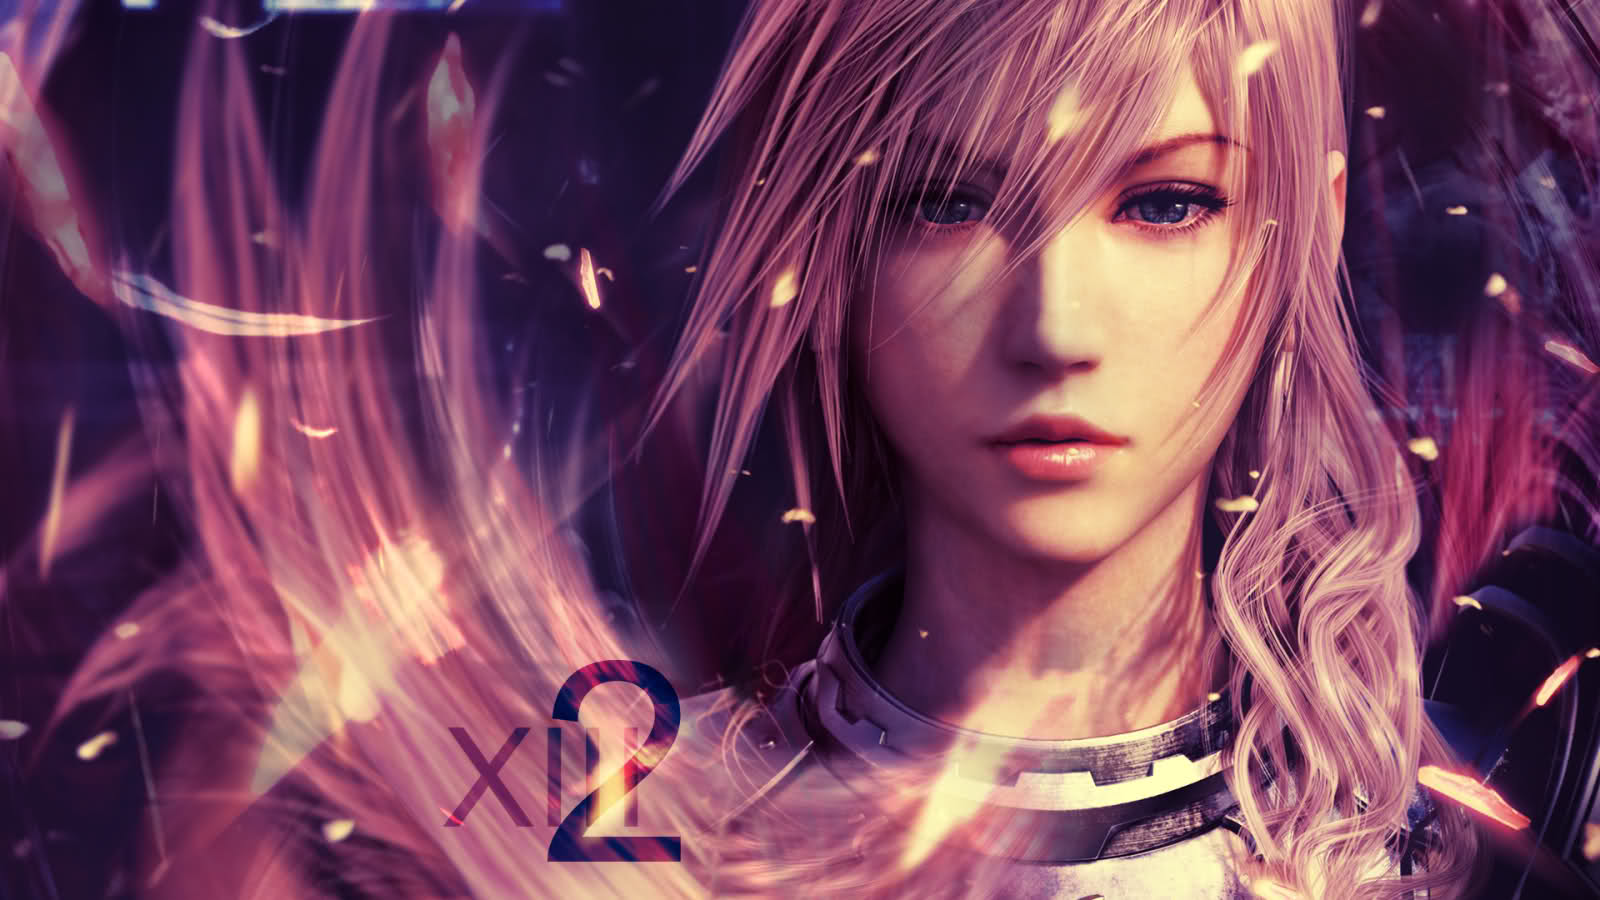 final fantasy xiii-2 wallpaper and background image | 1600x900 | id